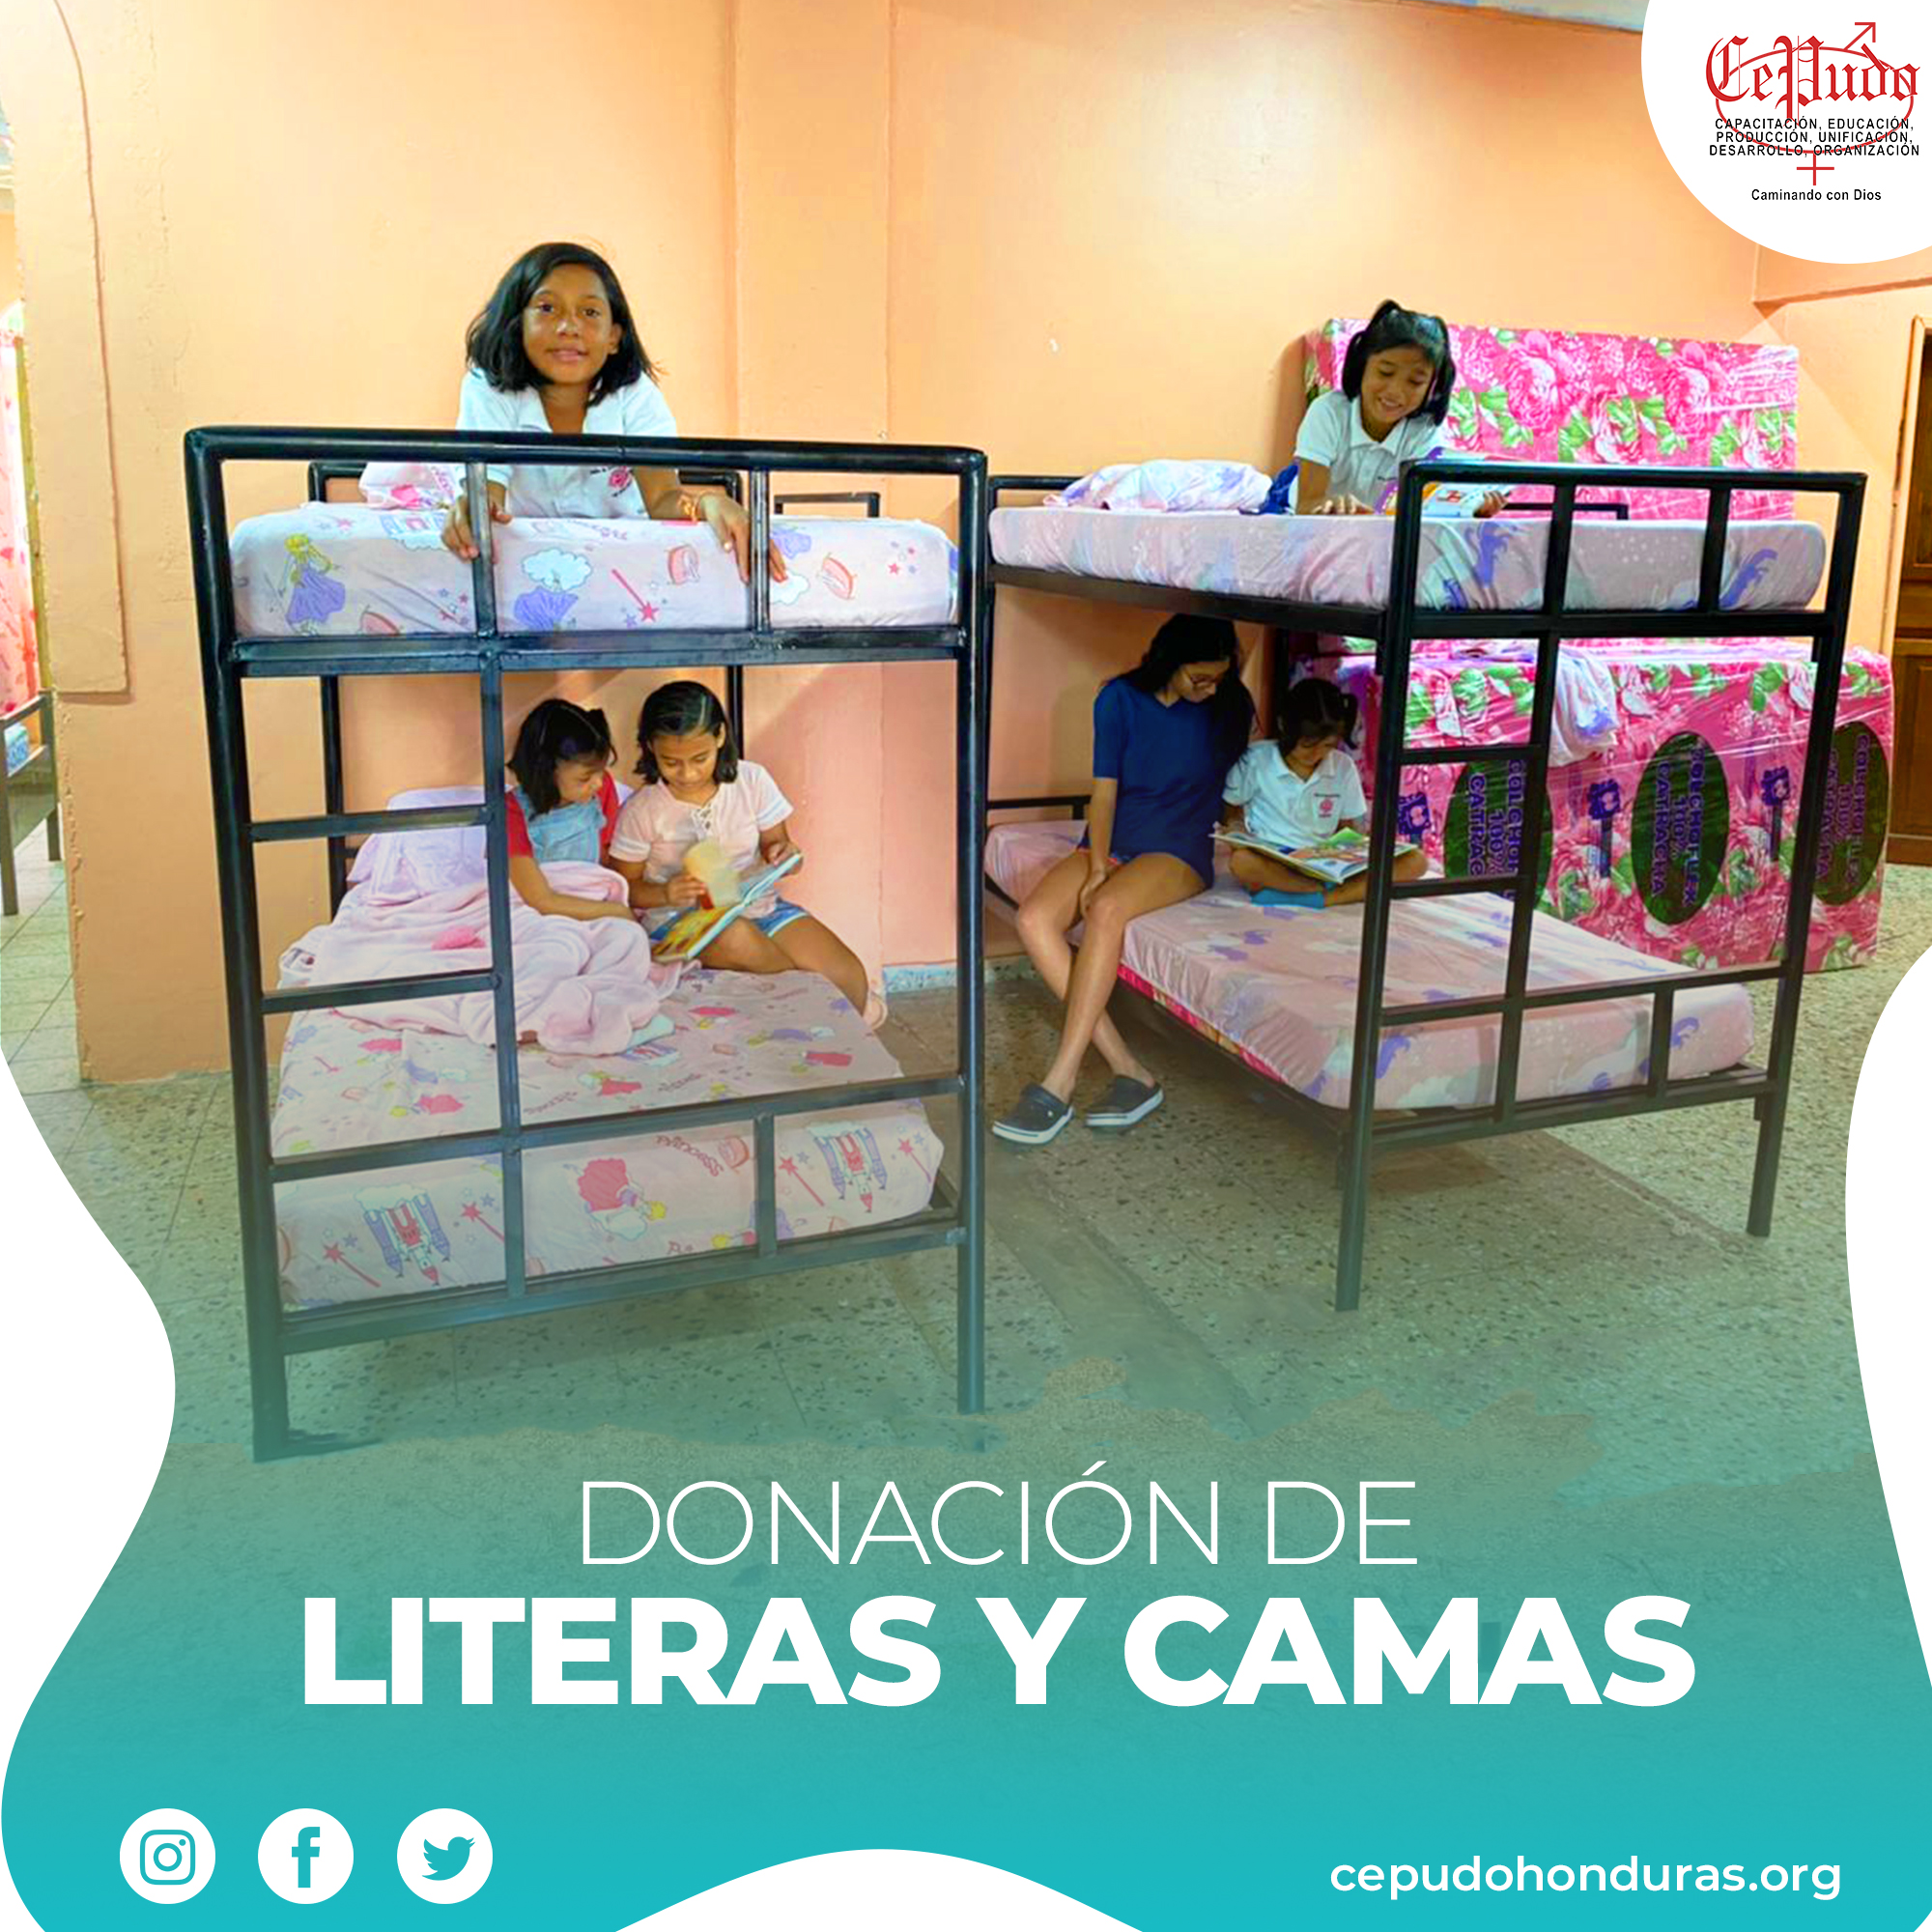 Donation of Bunk Beds and Beds